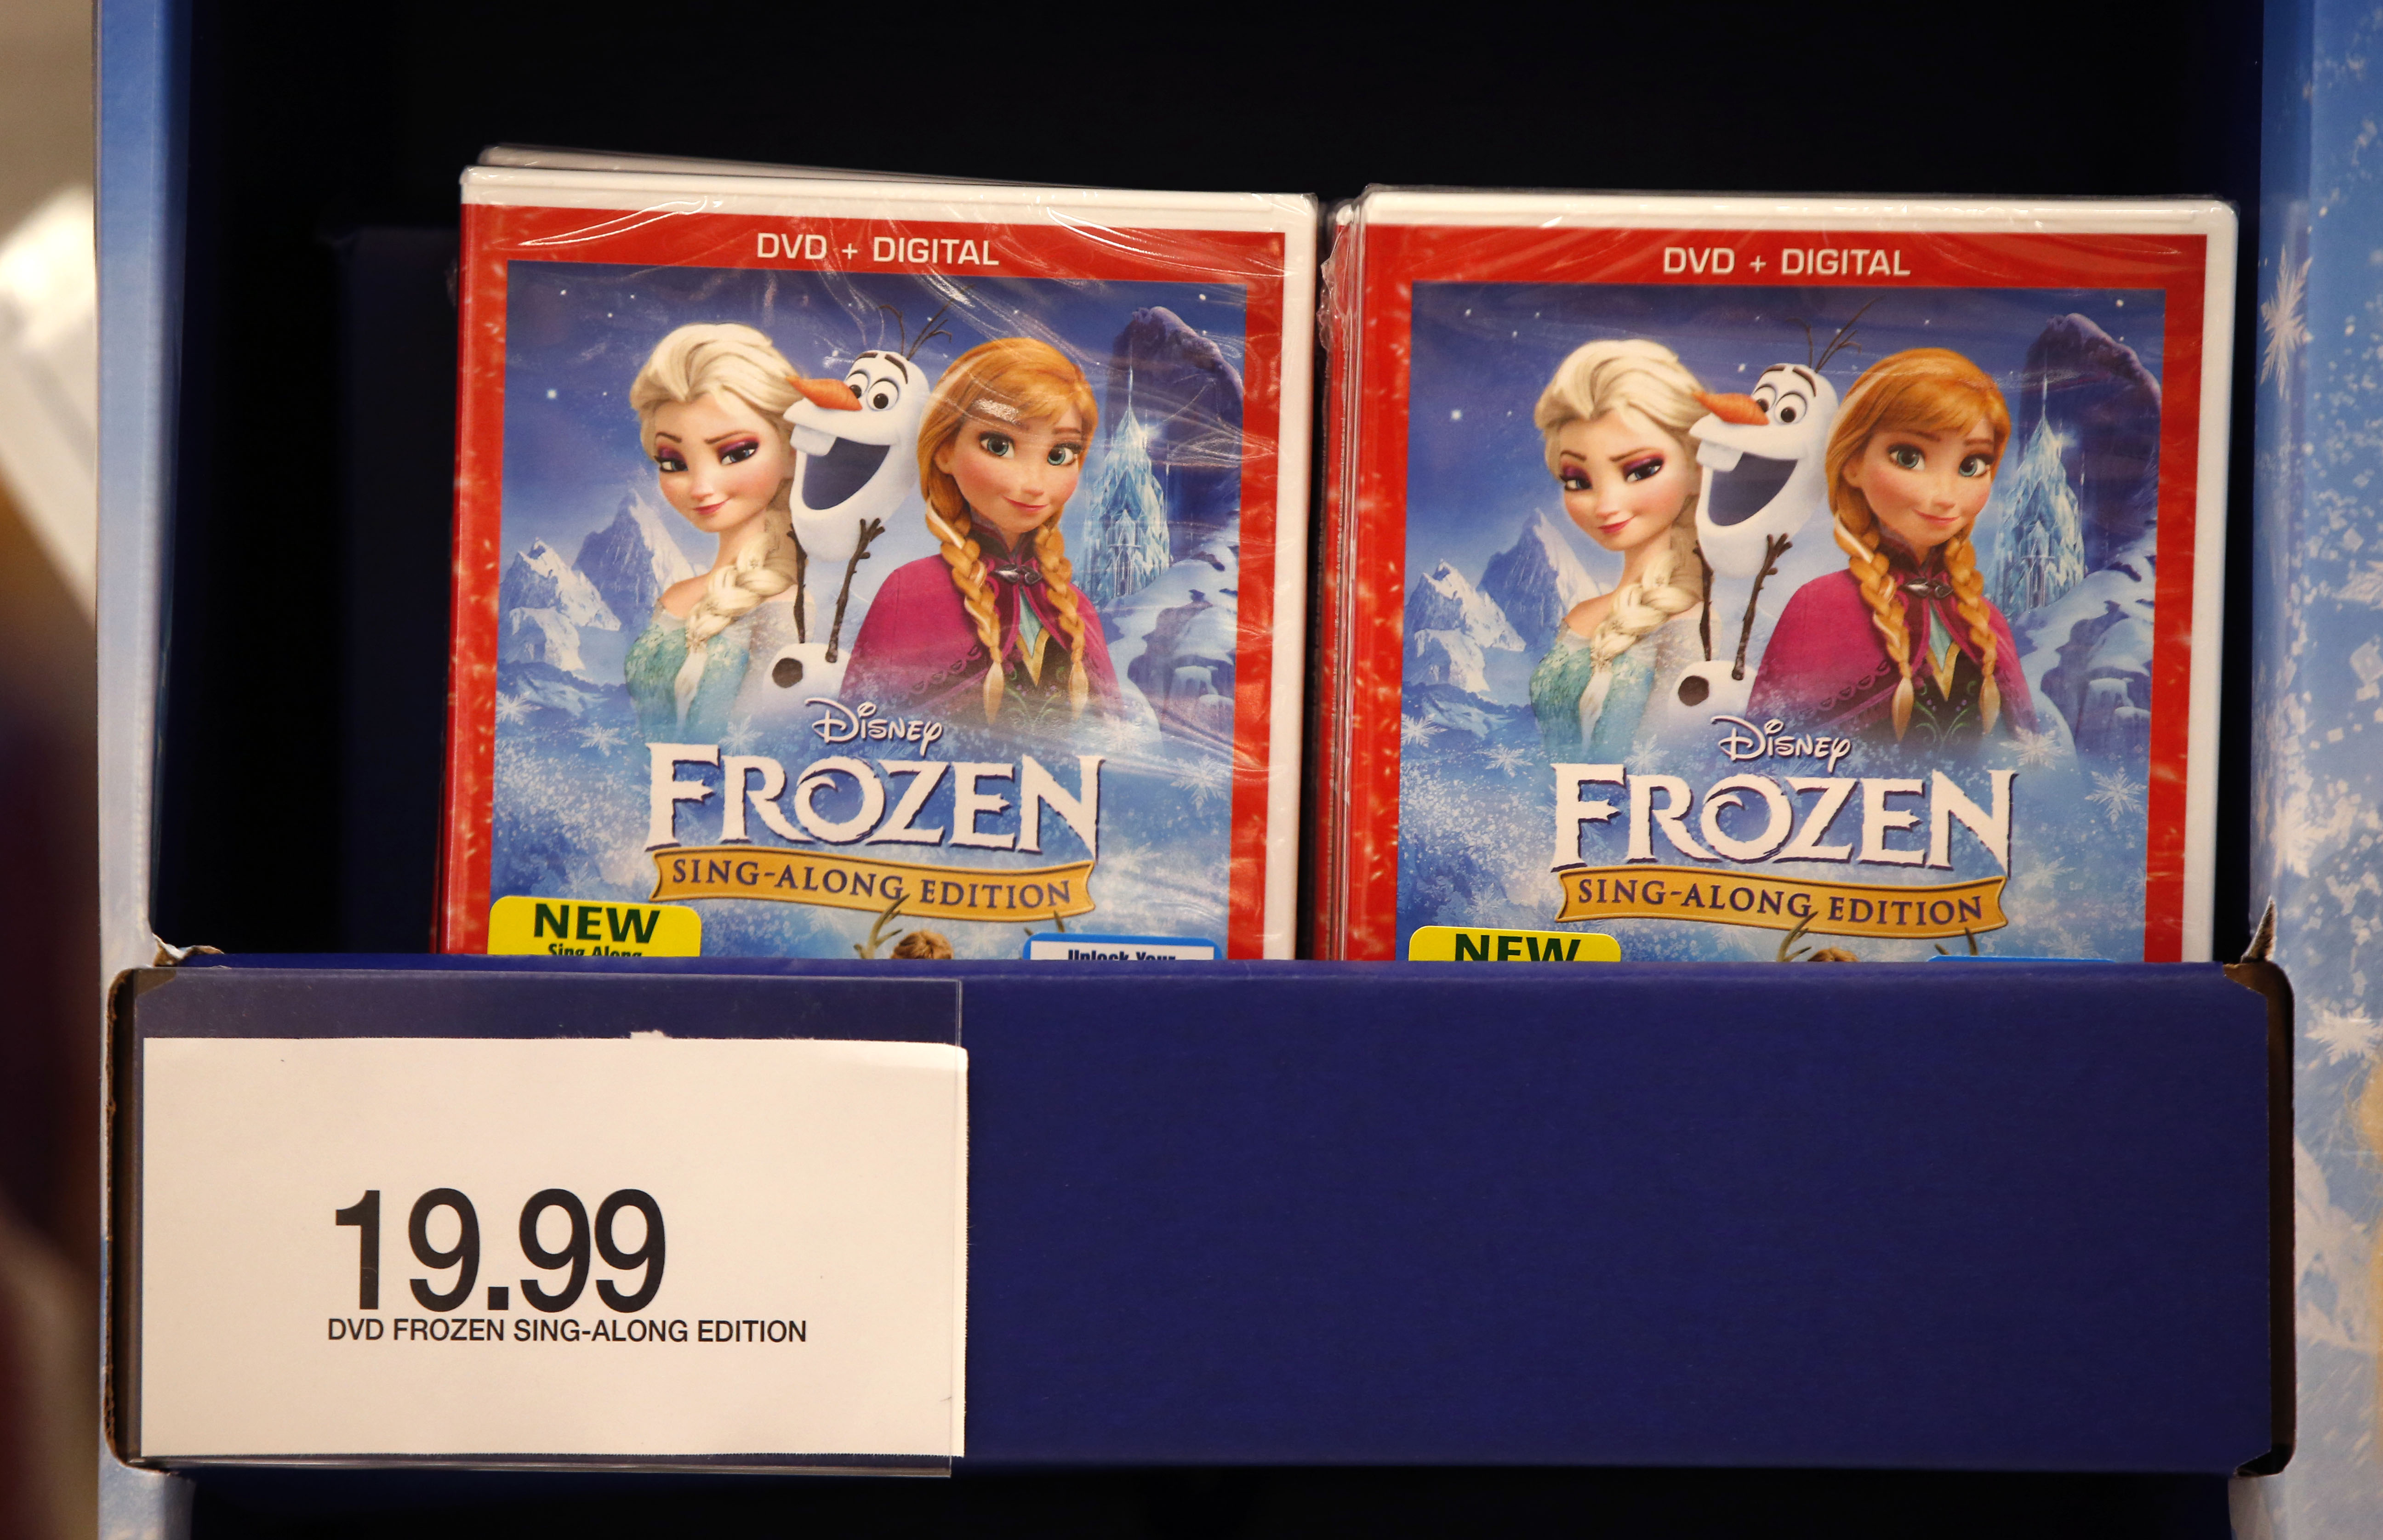 DVD's of Disney' s Frozen are for sale at a Target on Black Friday, Nov. 28, 2014, in South Portland, Maine. (AP Photo/Robert F. Bukaty)